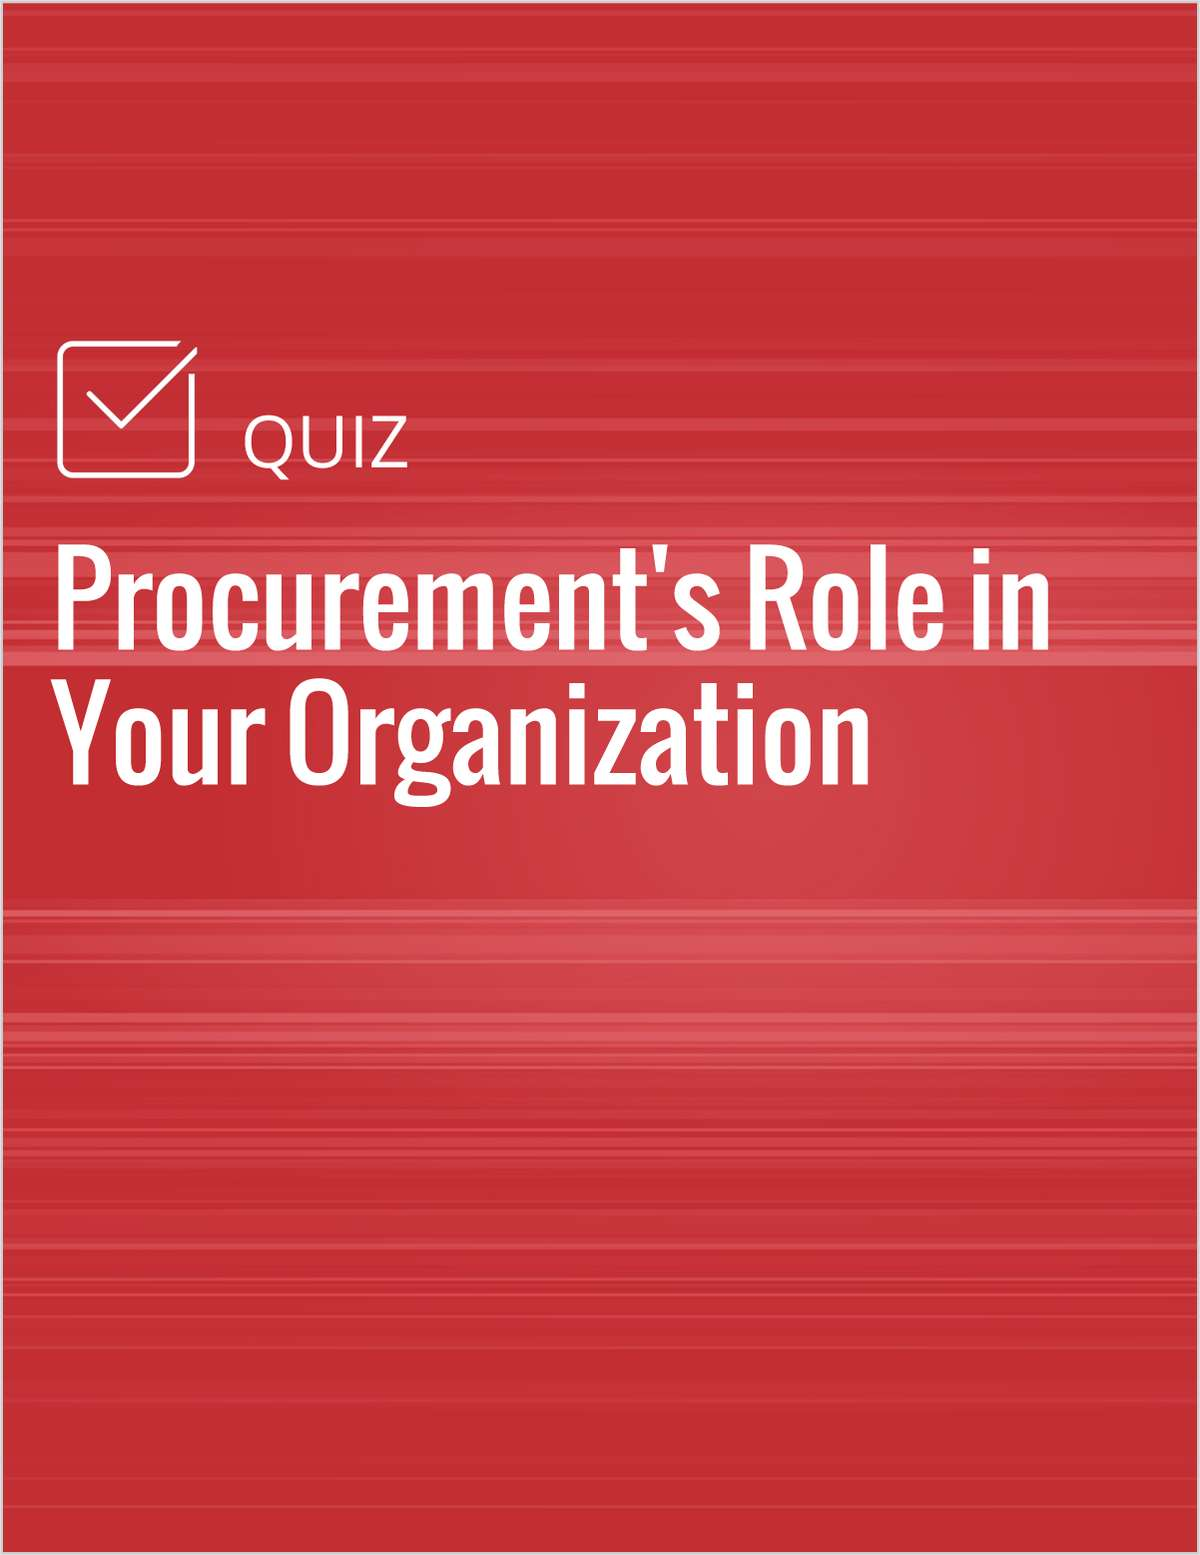 Procurement's Role in Your Organization